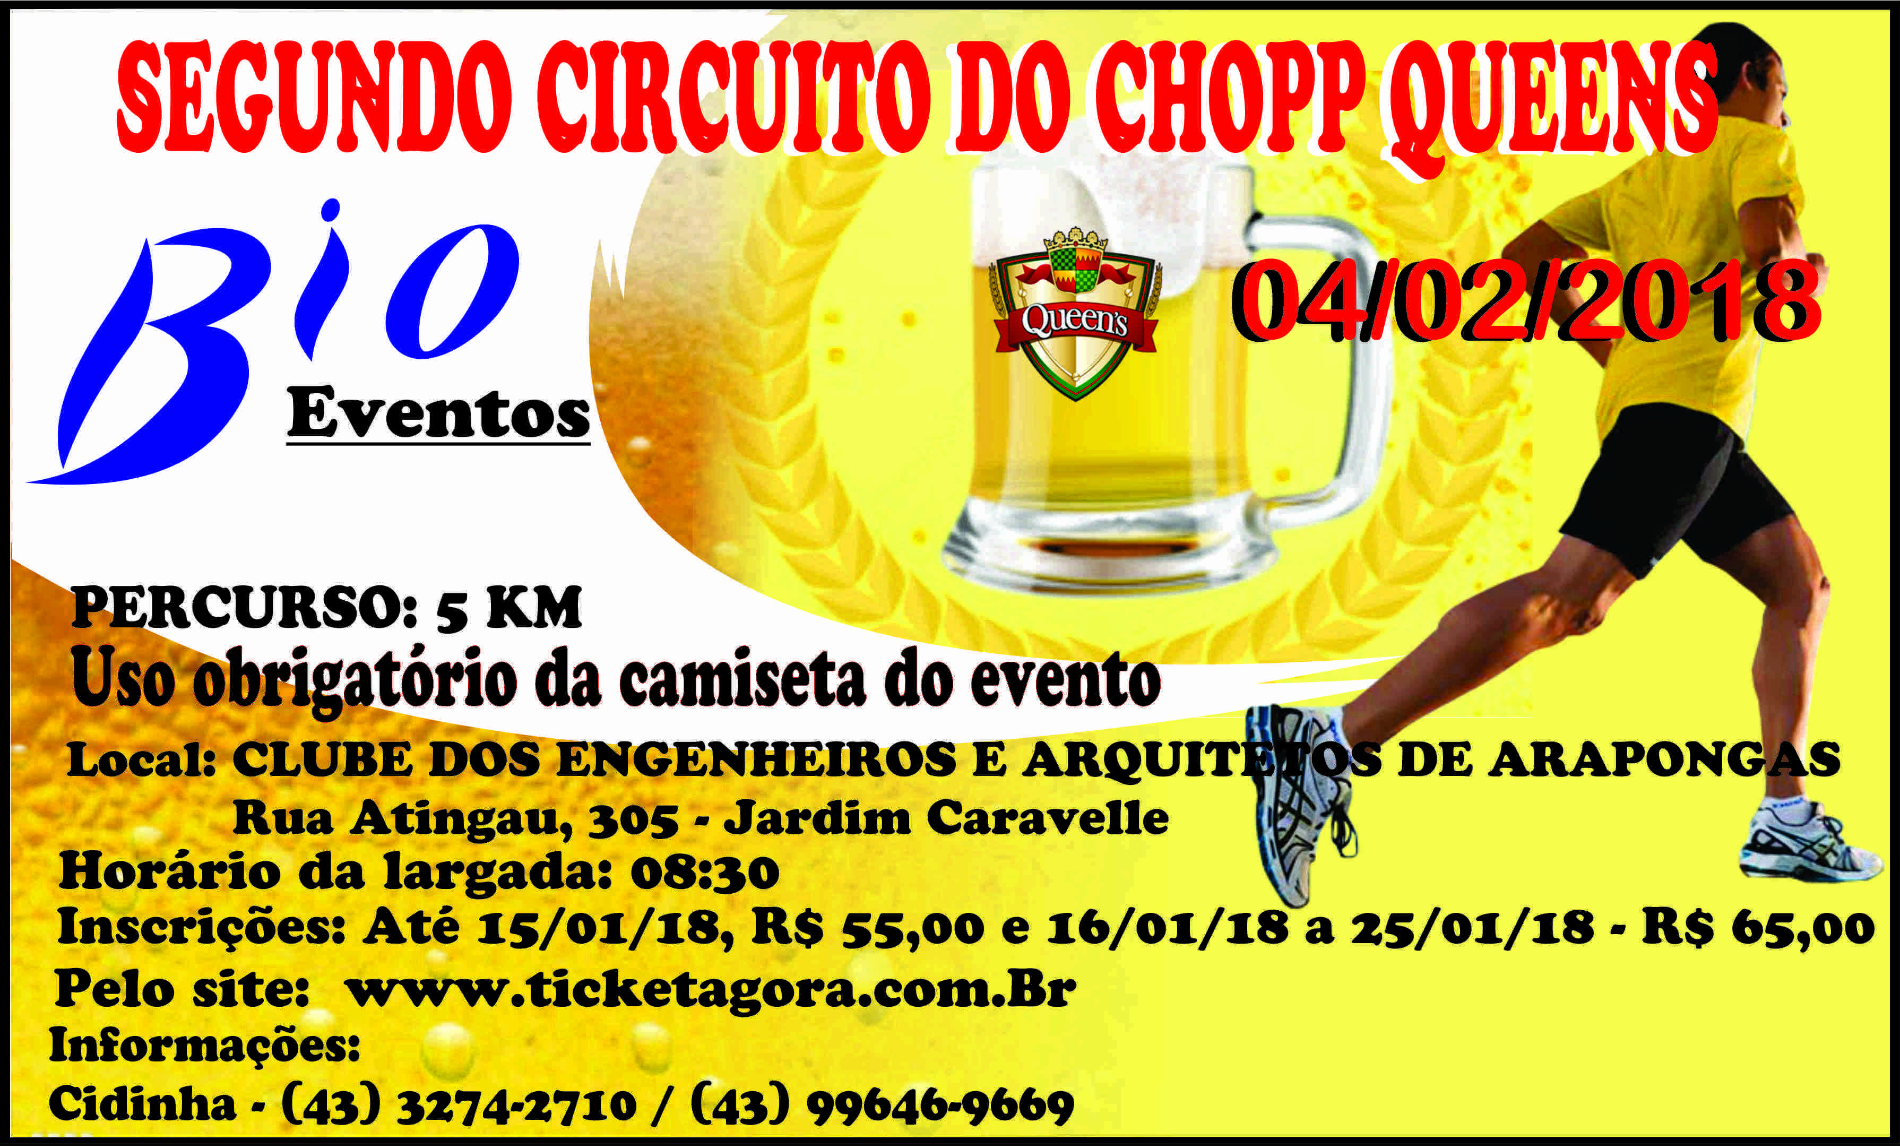 SEGUNDO CIRCUITO DO CHOPP QUEENS